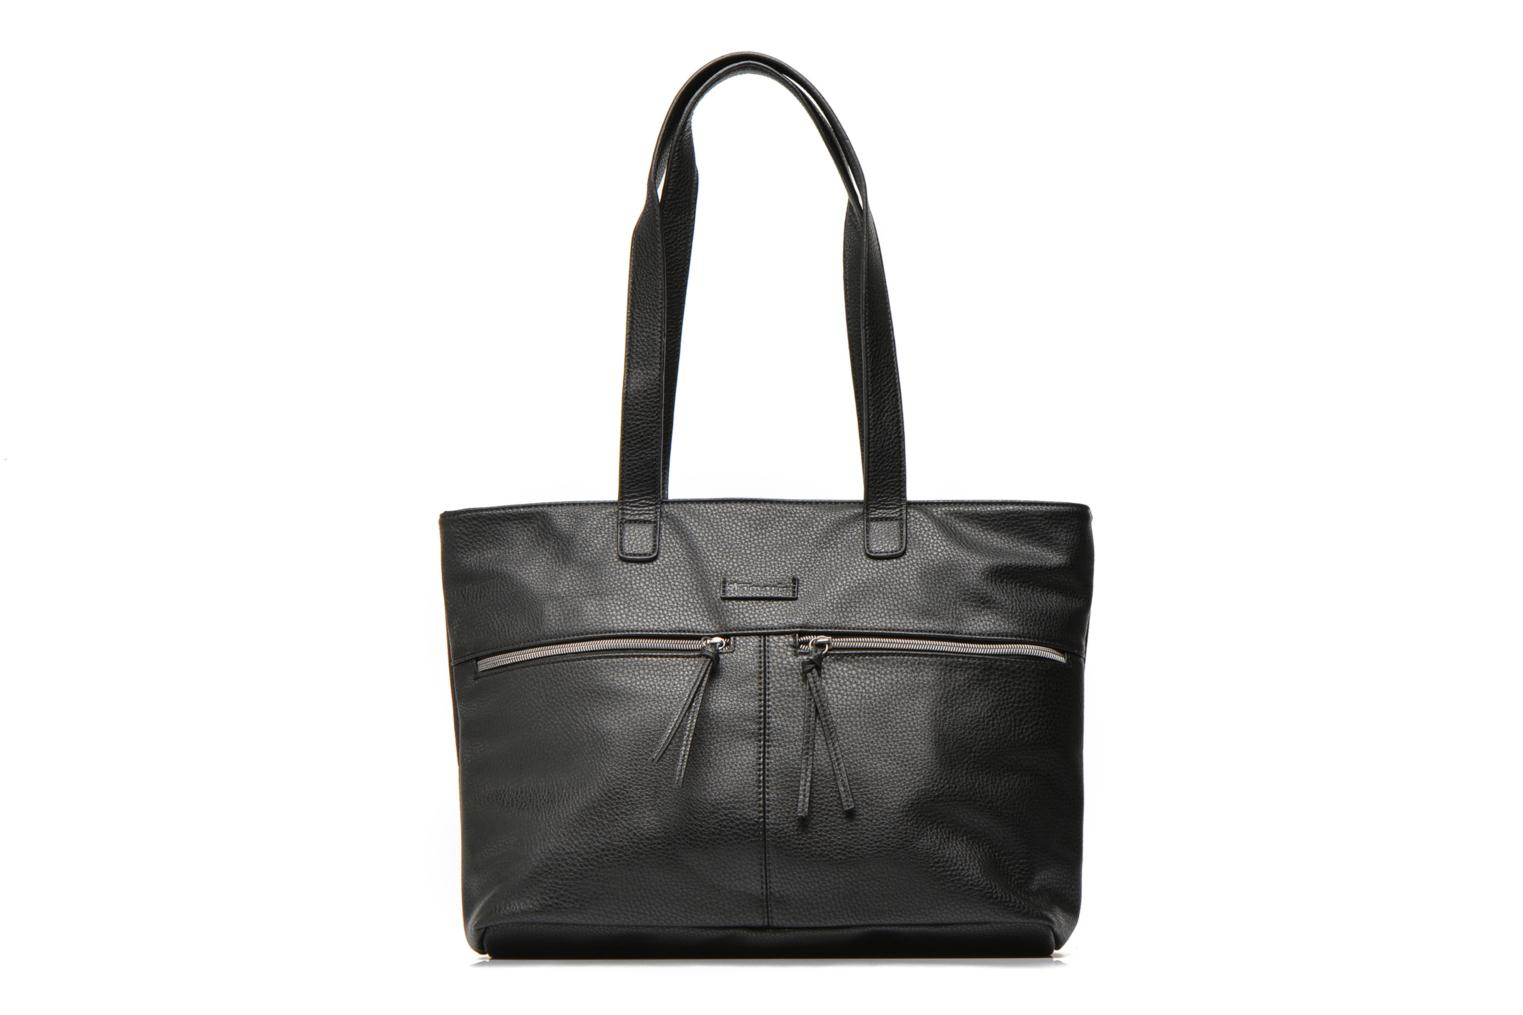 GLAM BUSINESS Shopping bag Black